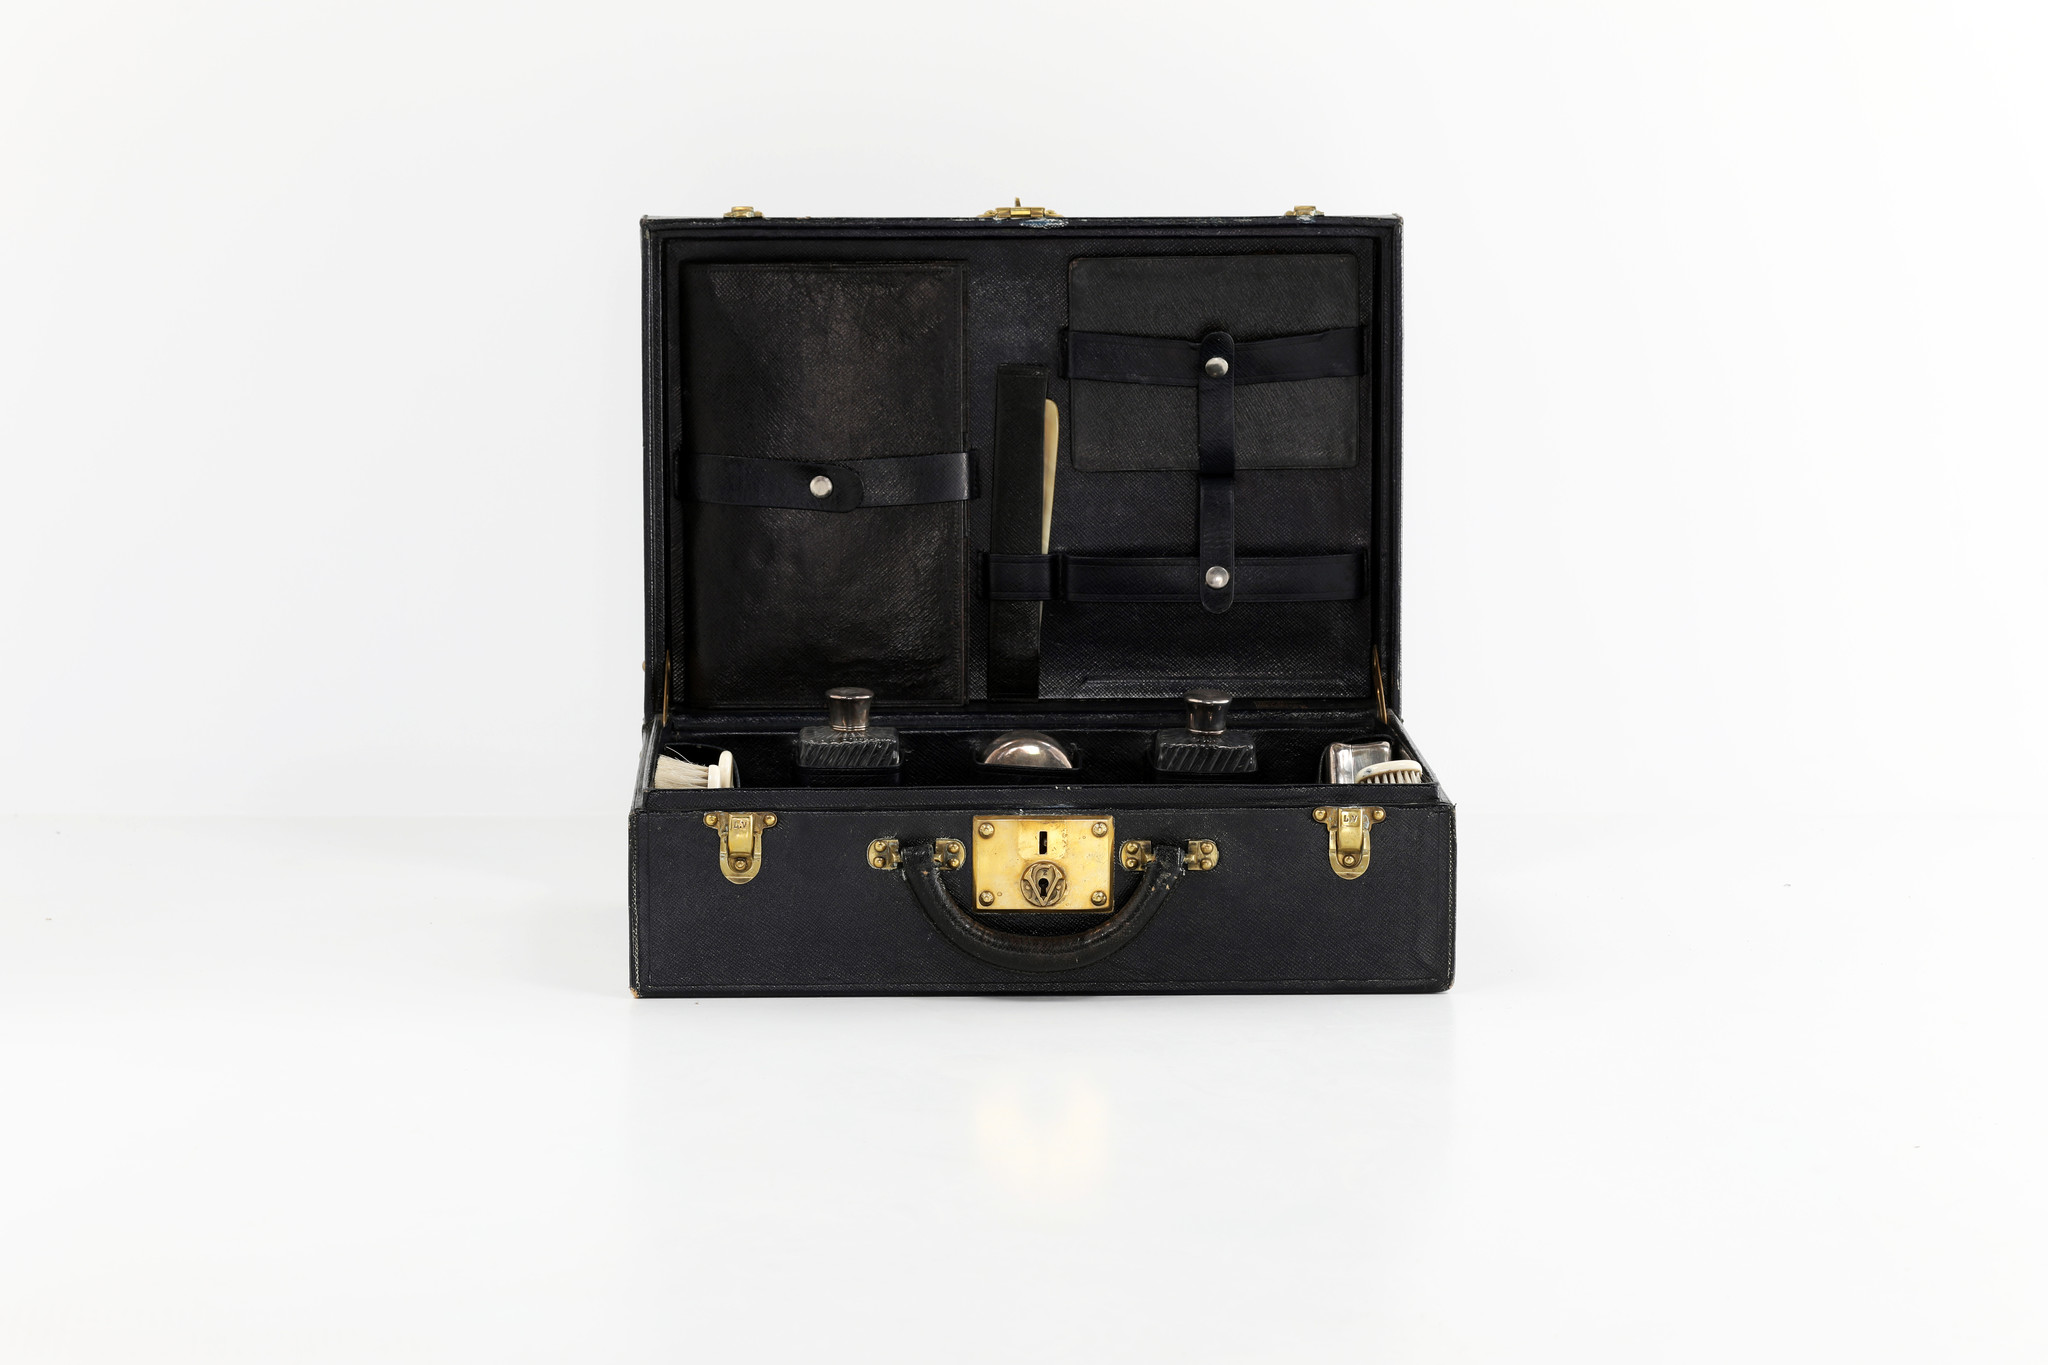 Extremely rare leather Louis Vuitton beauty case, 1930